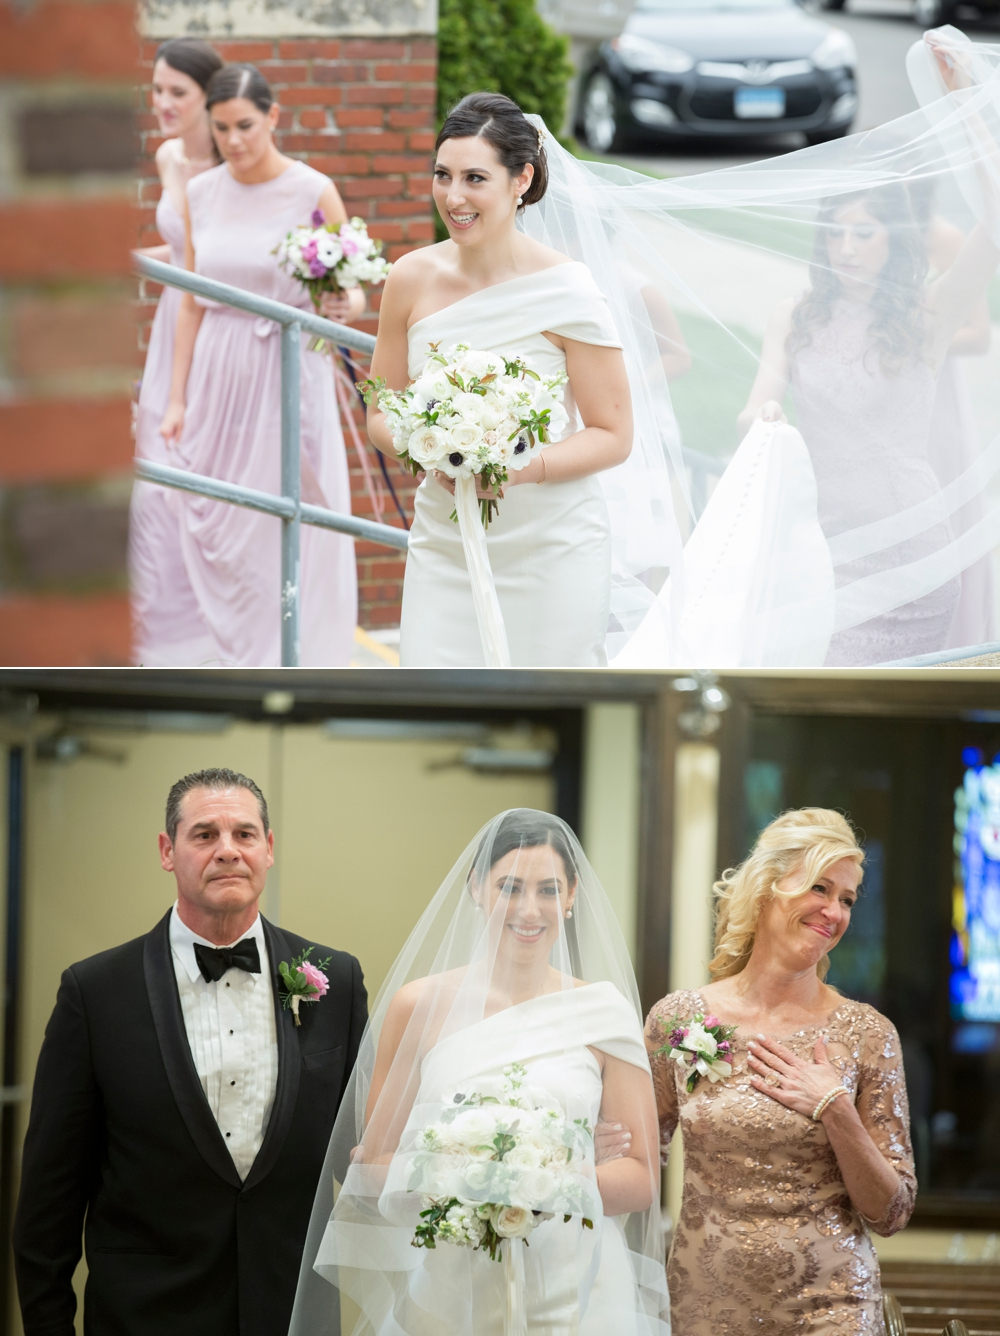 EoilaMansion_Wedding_Leah&Tom_0016.jpg